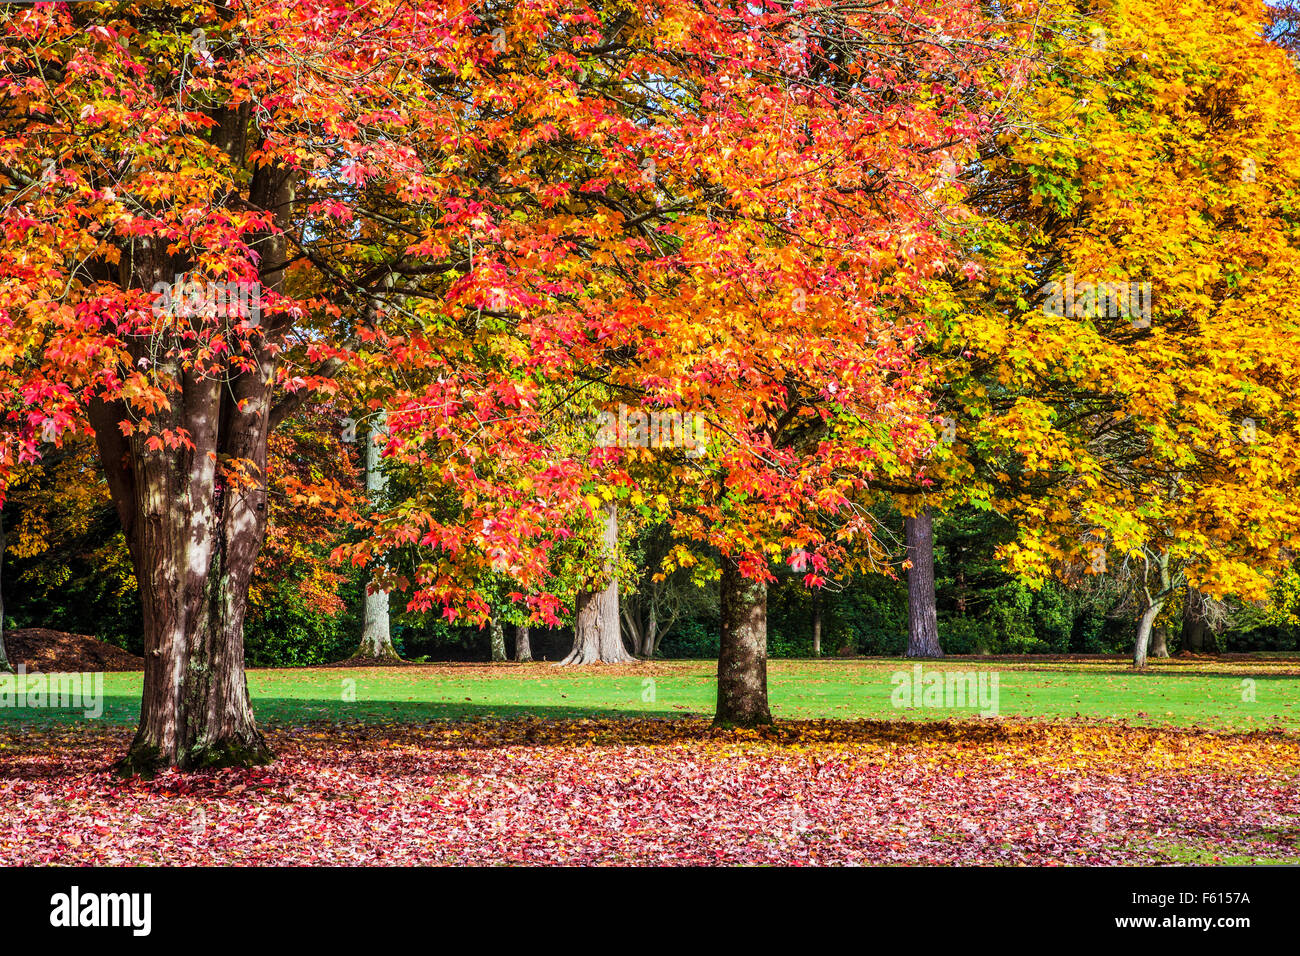 Red Maple Acer Rubrum October Glory And Fastigiate Norway Maple